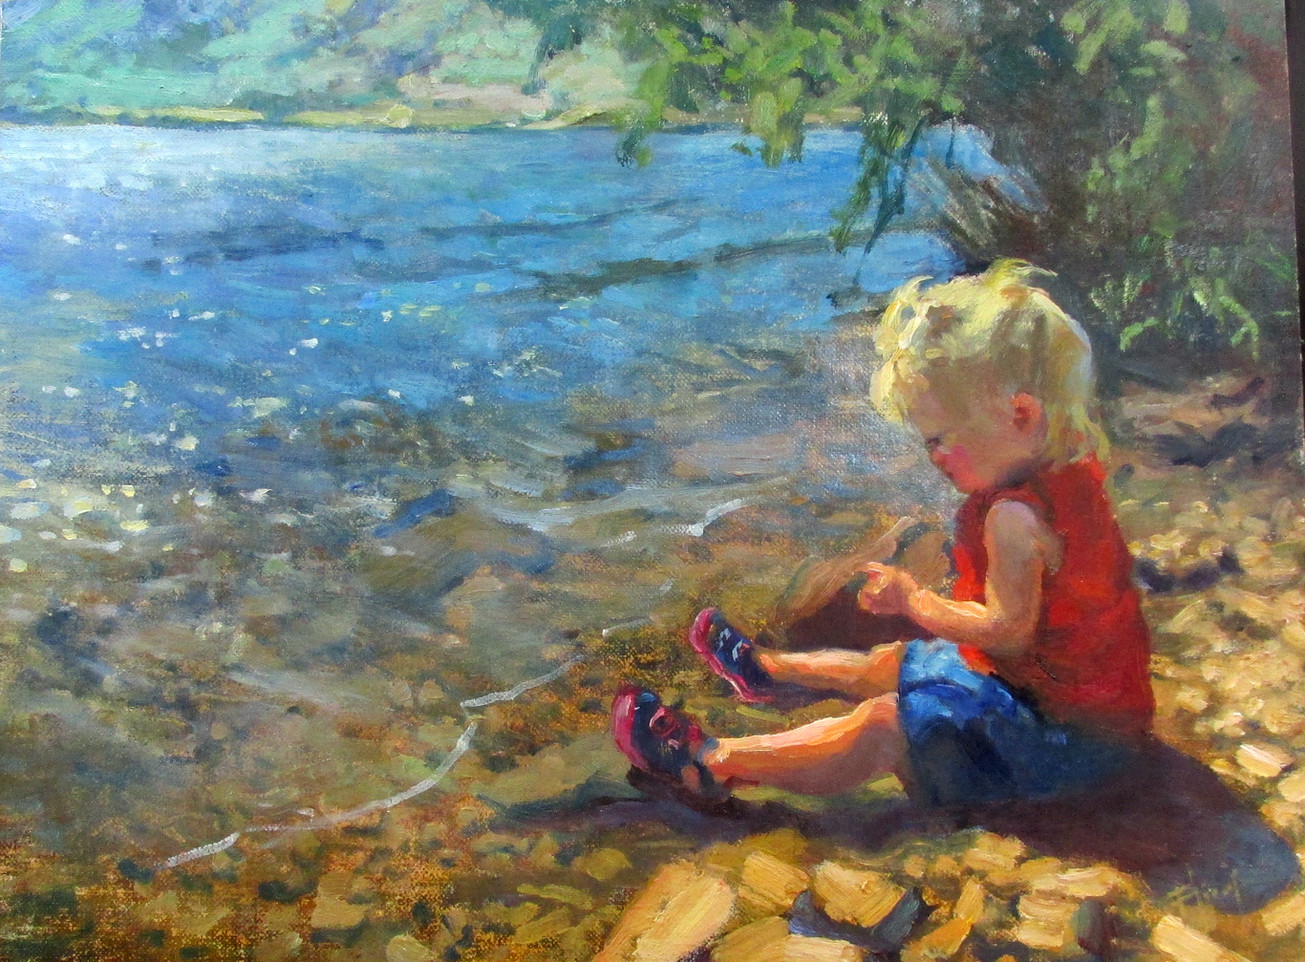 Riley by the water, 9x12, SOLD